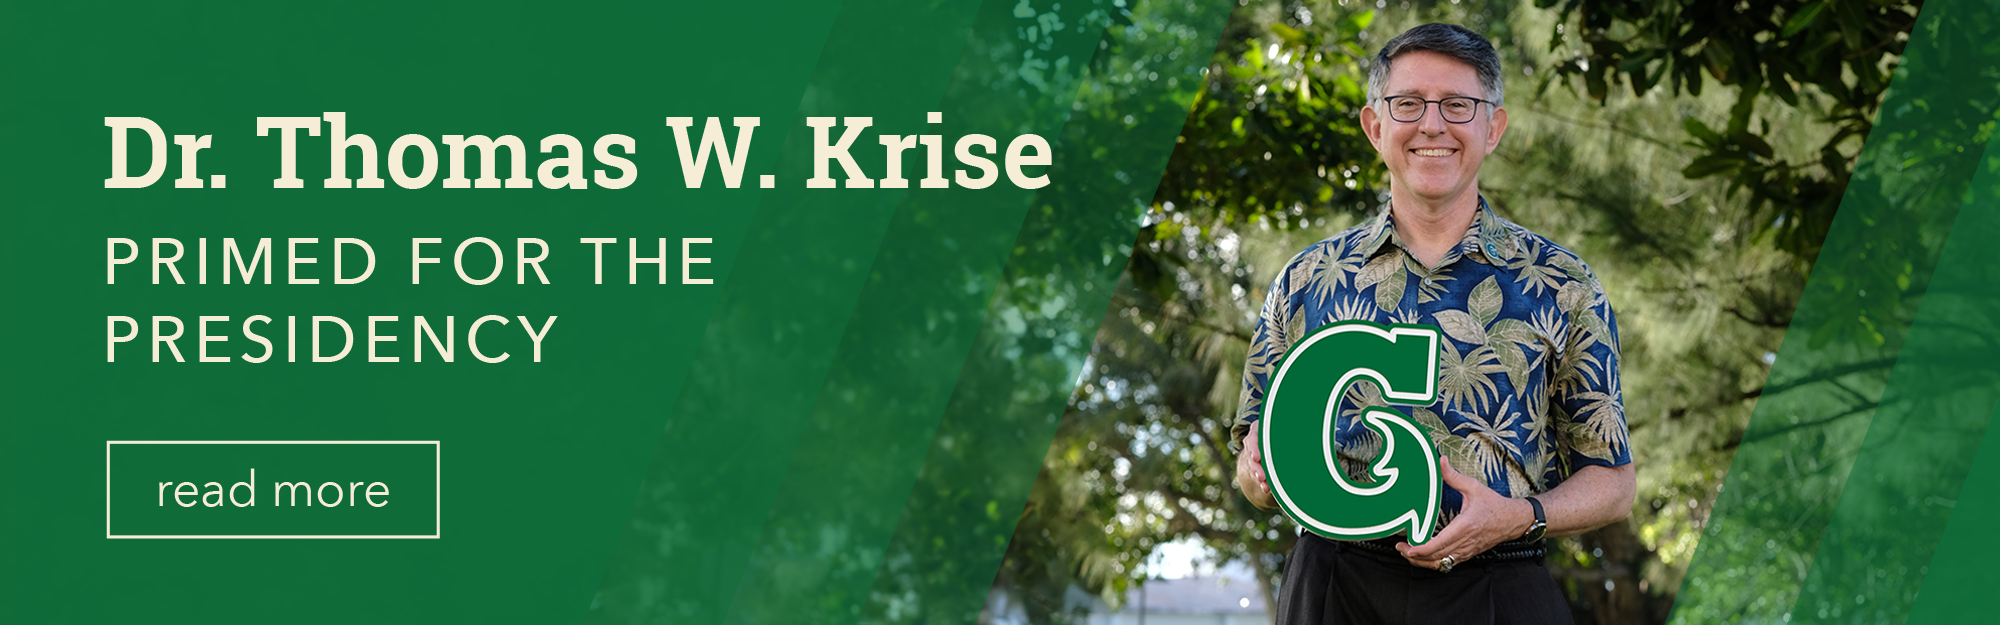 Dr. Krise Primed for Presidency